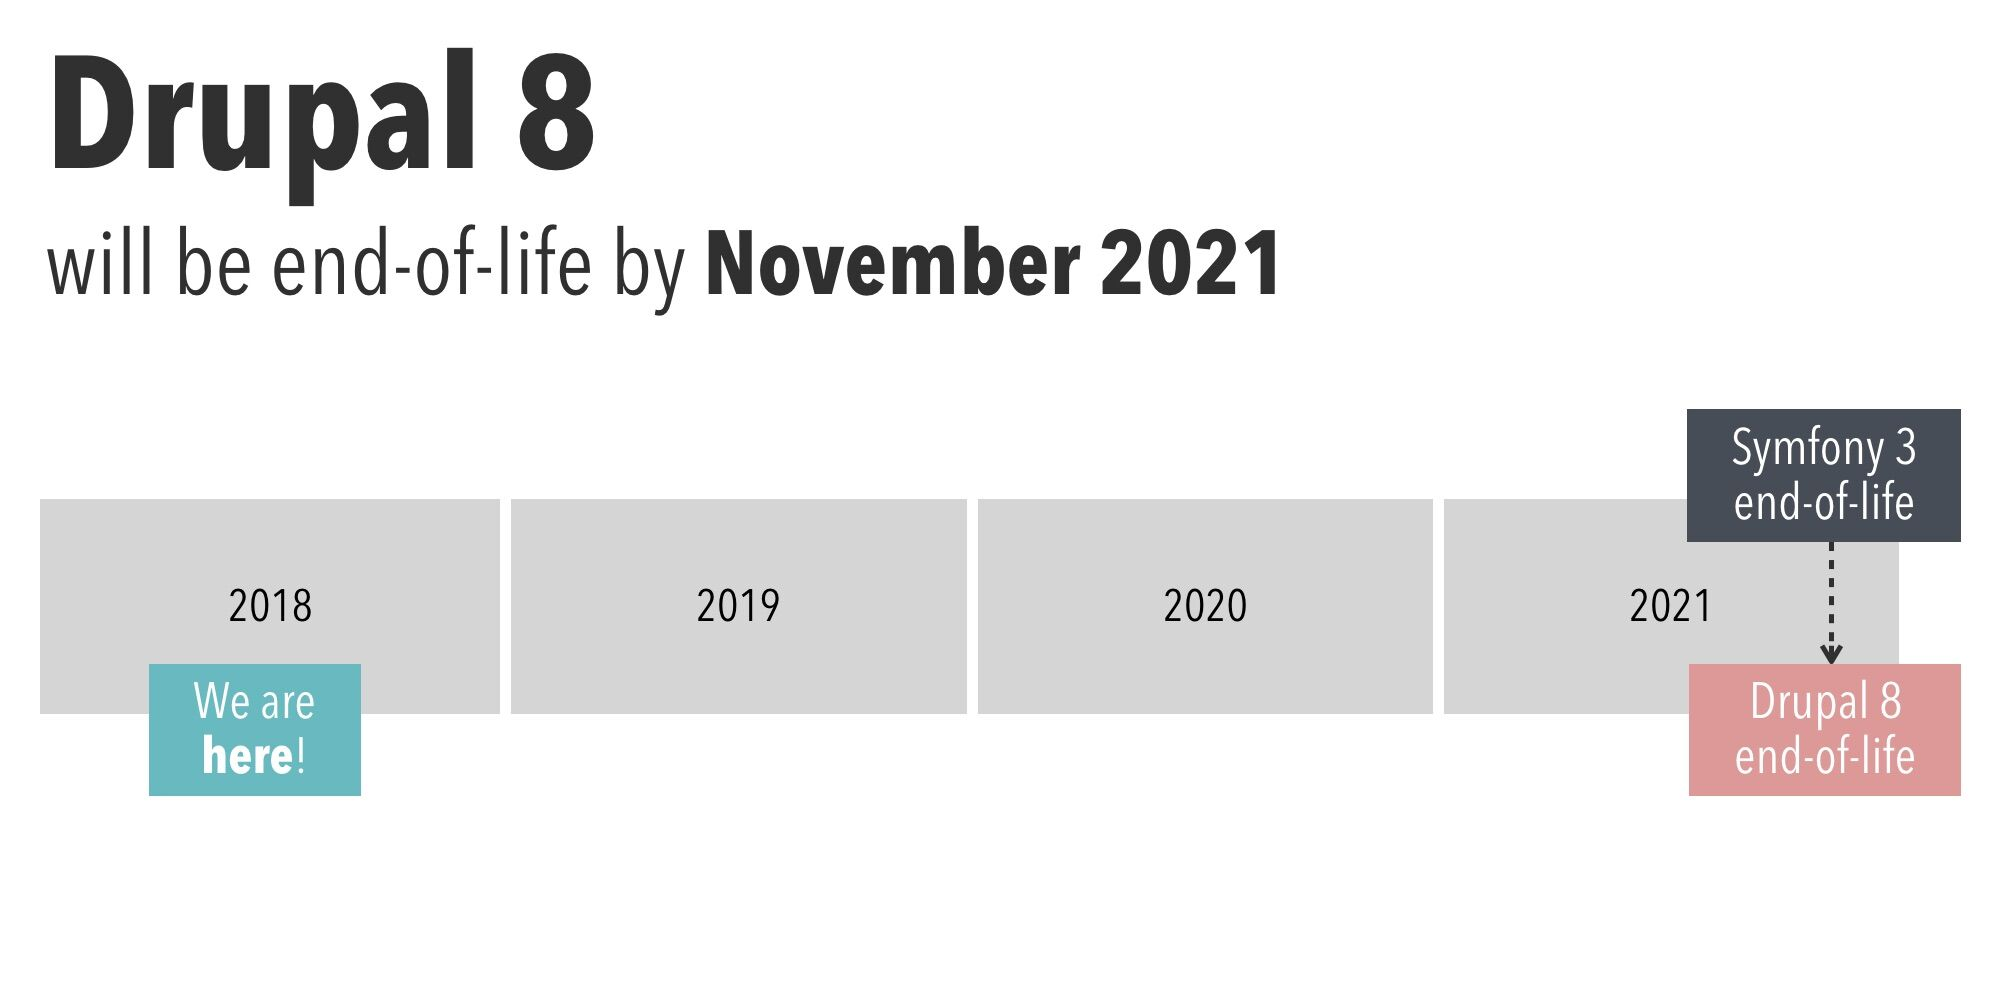 drupal-8-will-be-end-of-life-by-november-2021